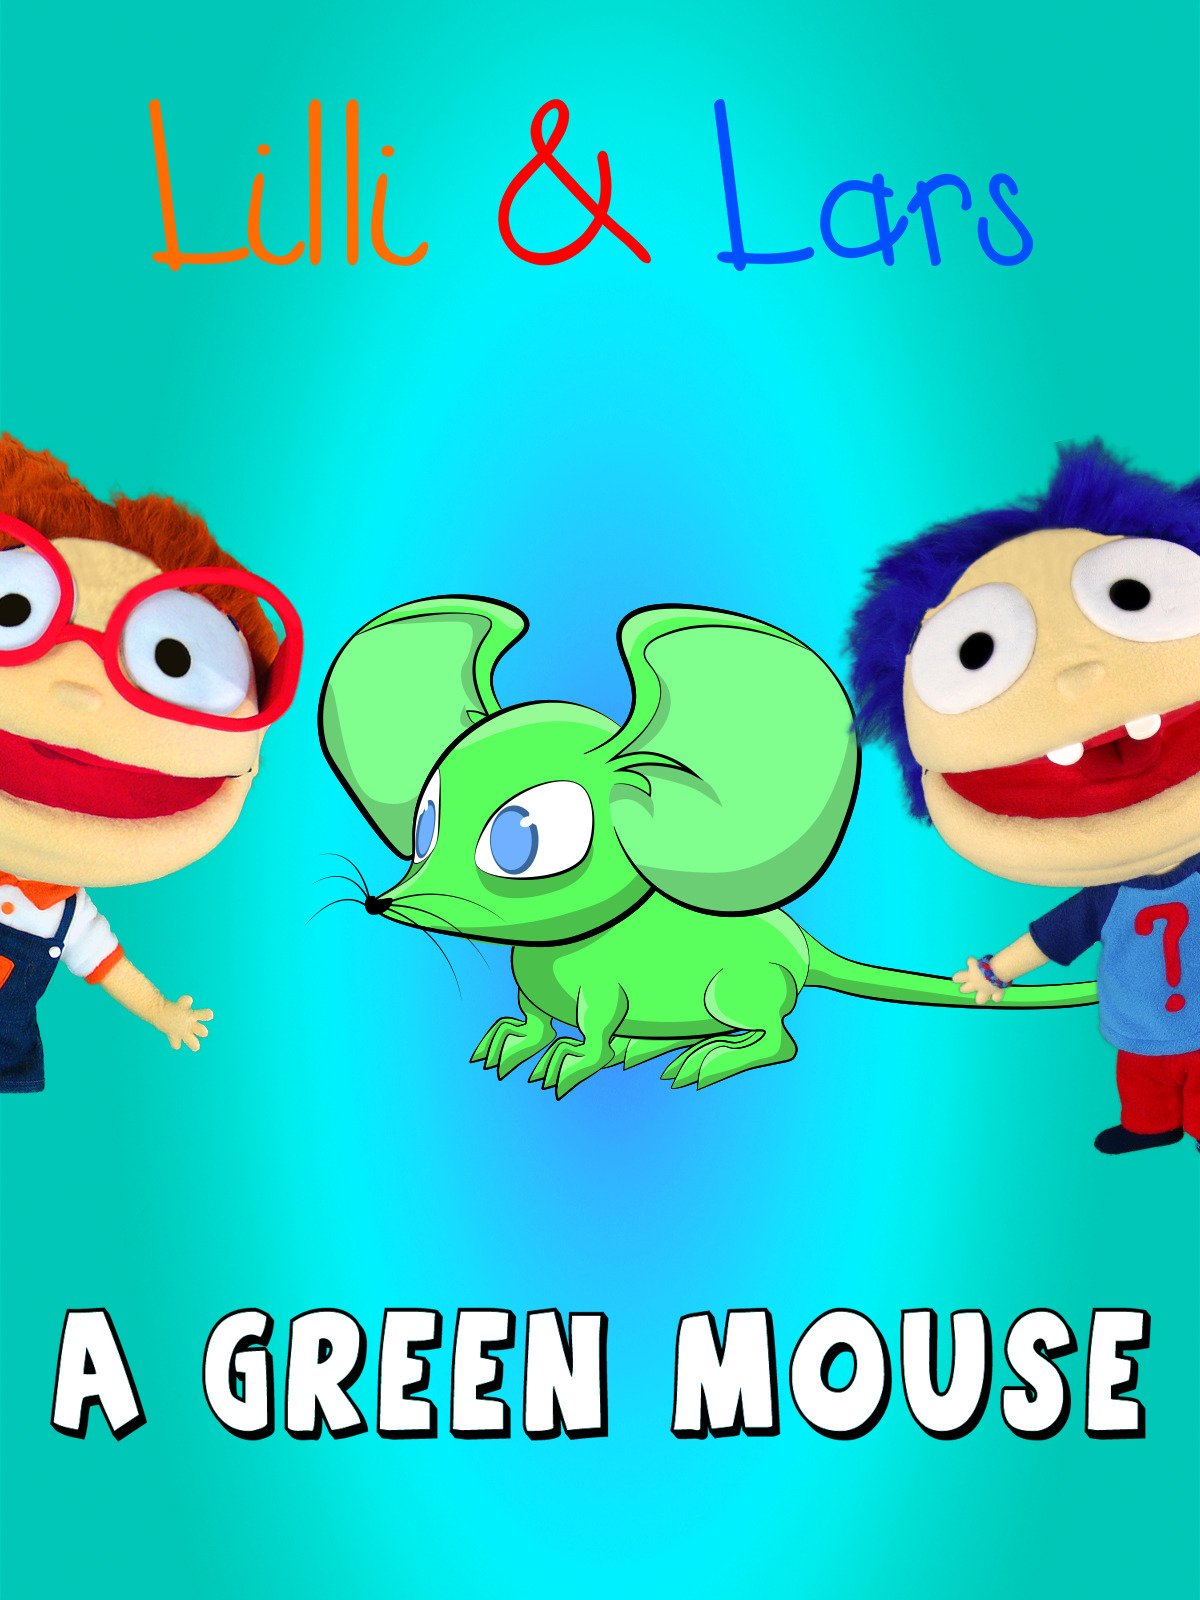 Clip: A Green Mouse